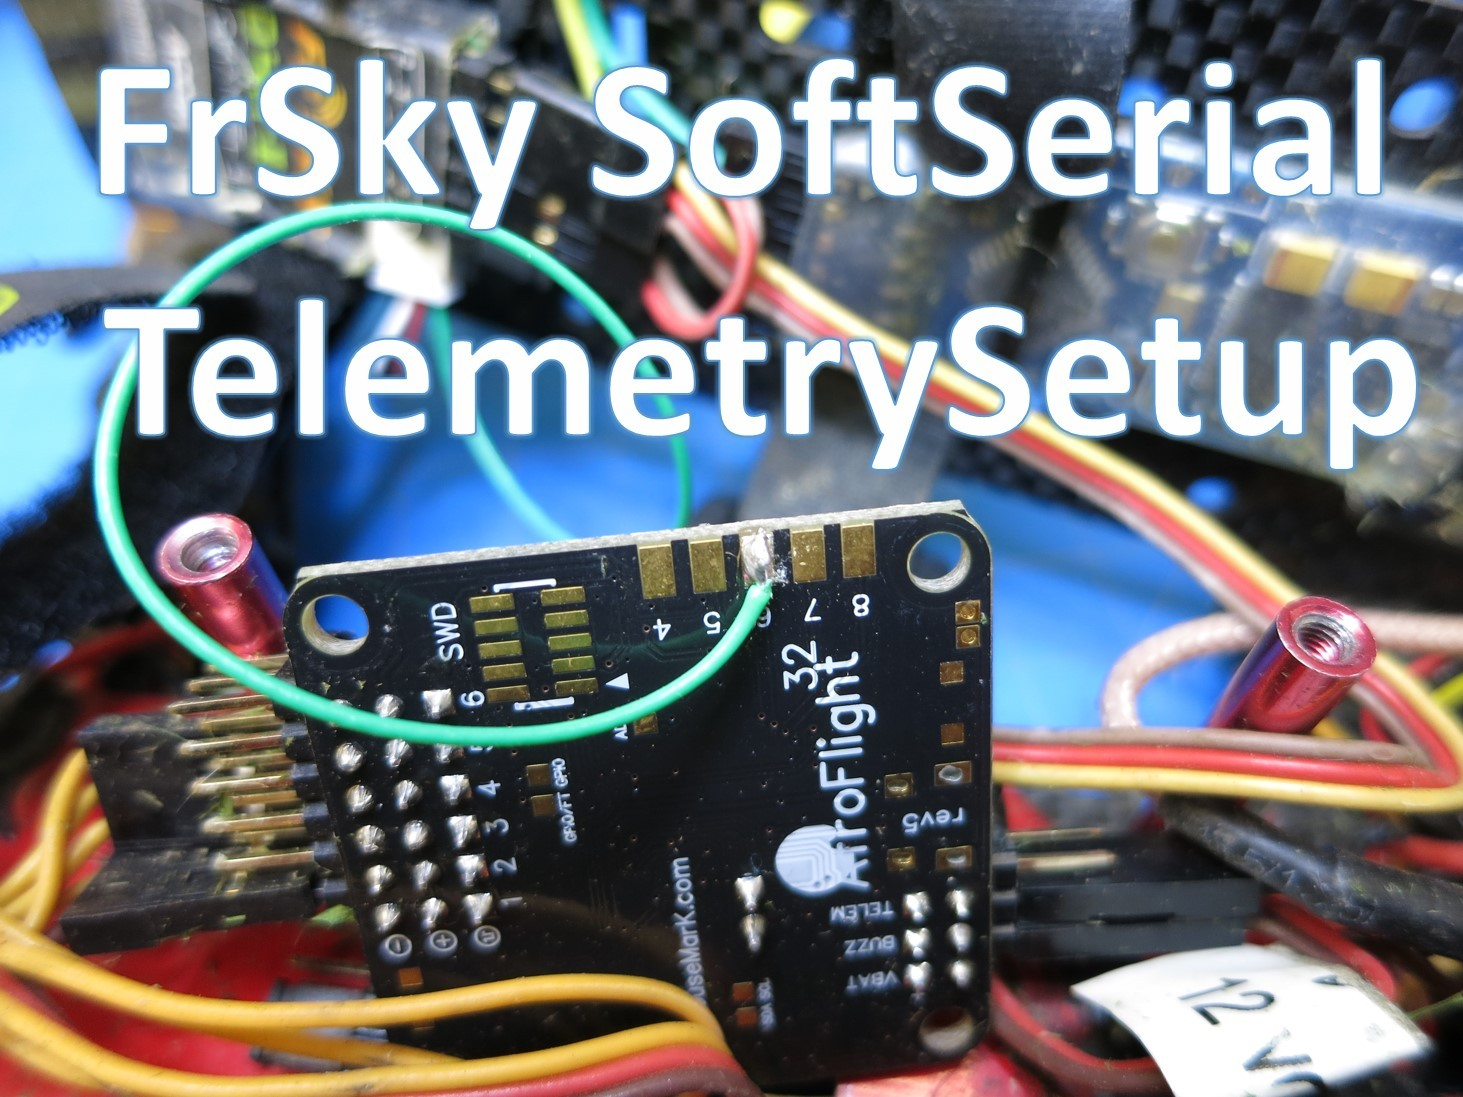 how to use frsky telemetry on your miniquad cleanflight picture1 jpg1463x1097 327 kb